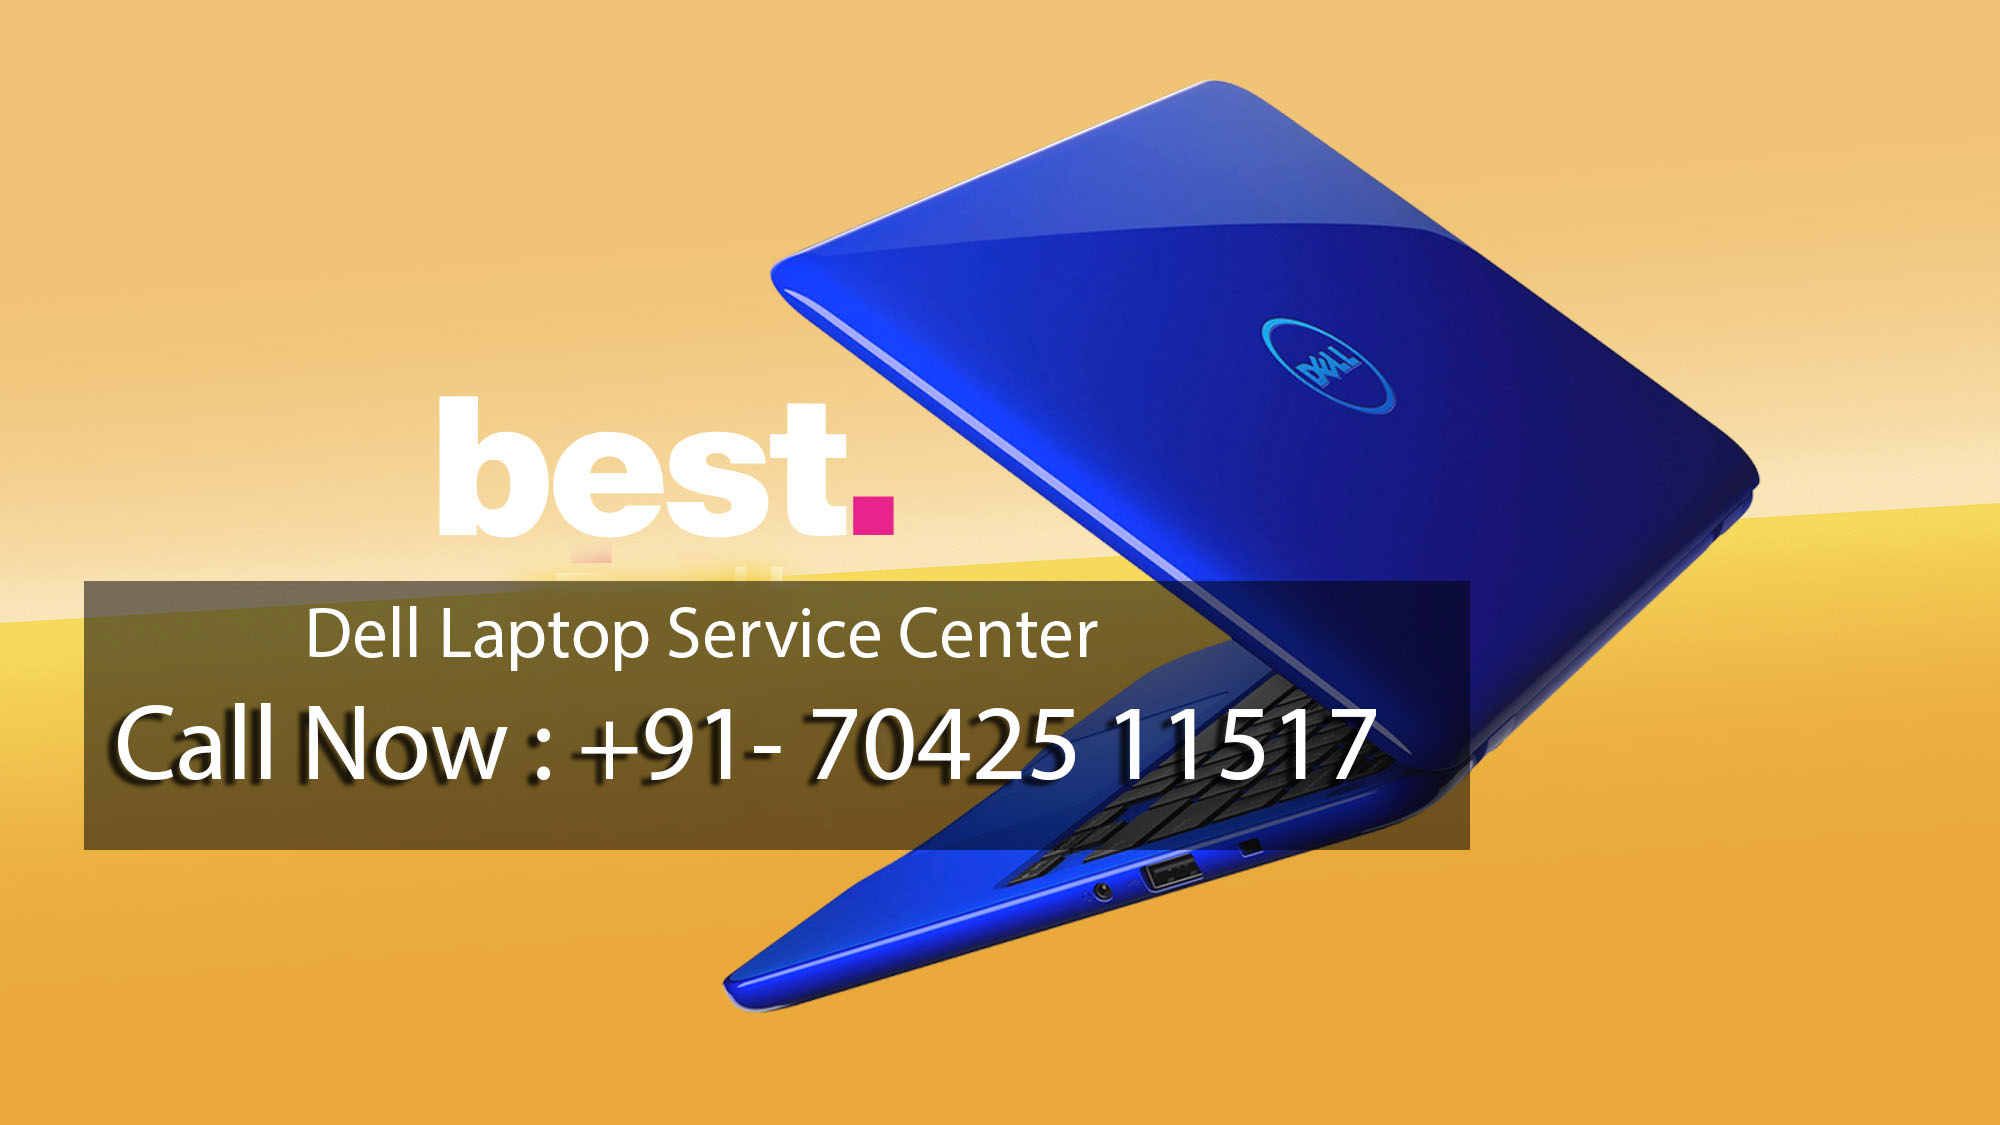 Dell Service Center in Preet Vihar